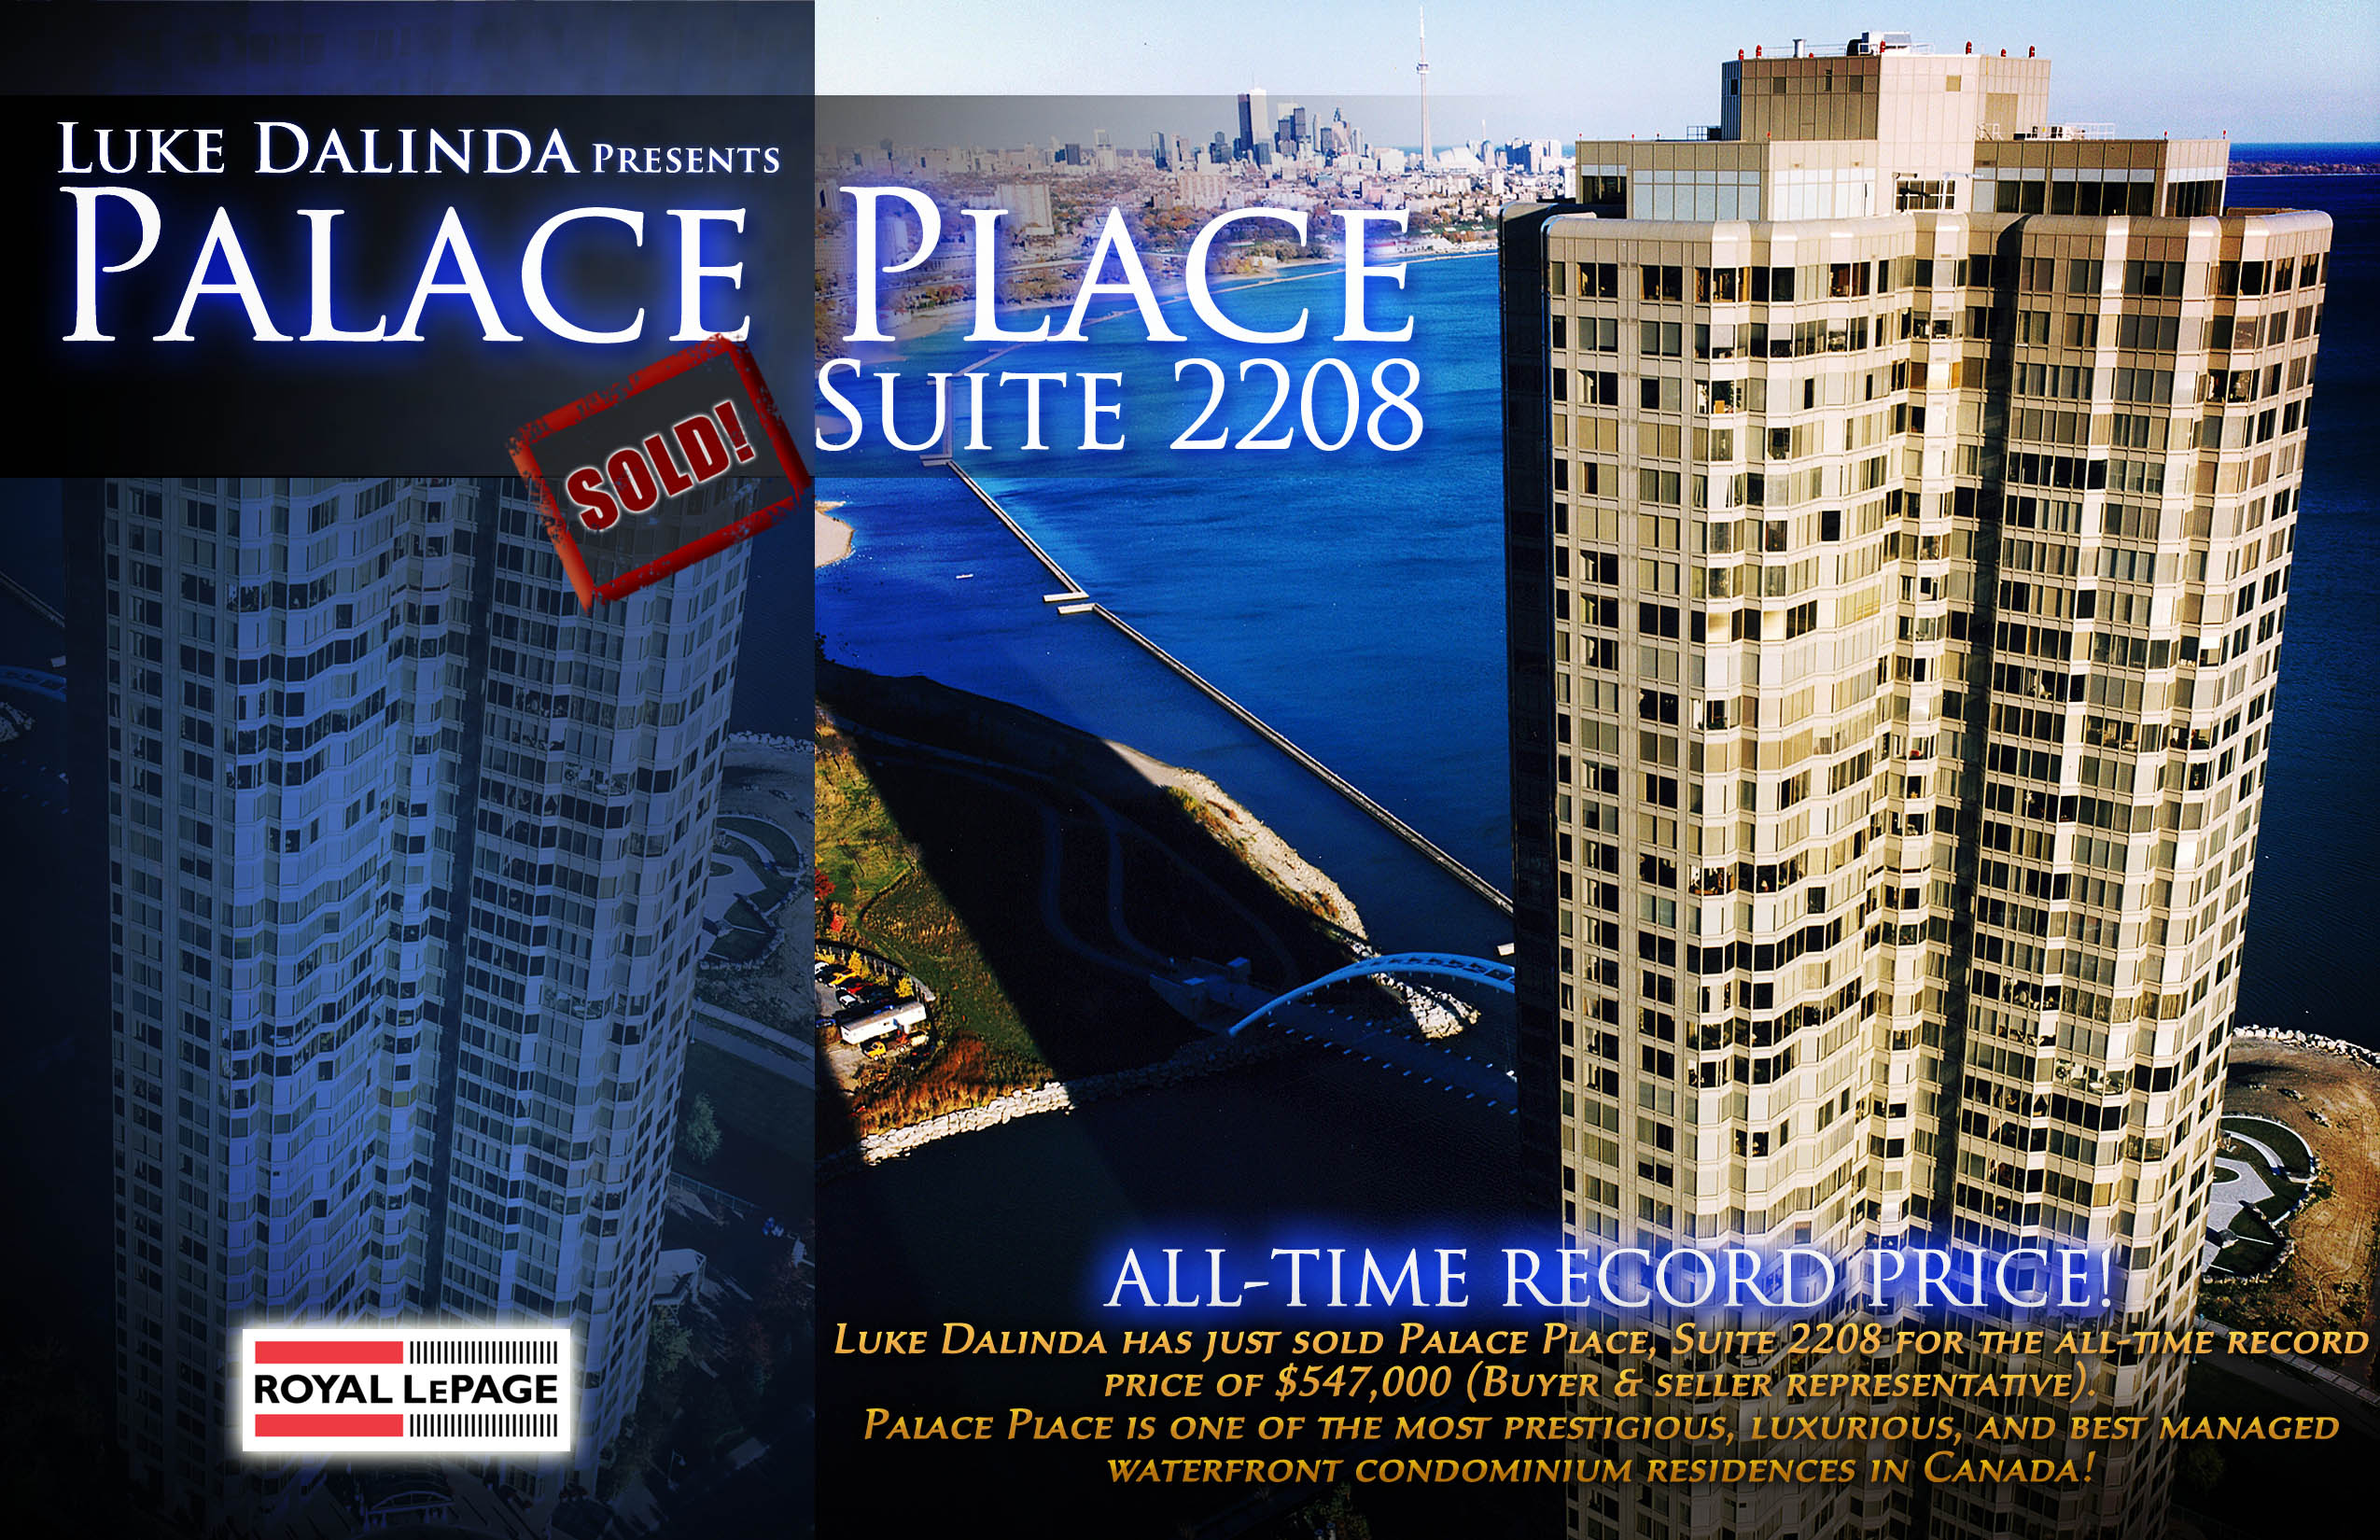 Palace-Place-Sold-2208.jpg